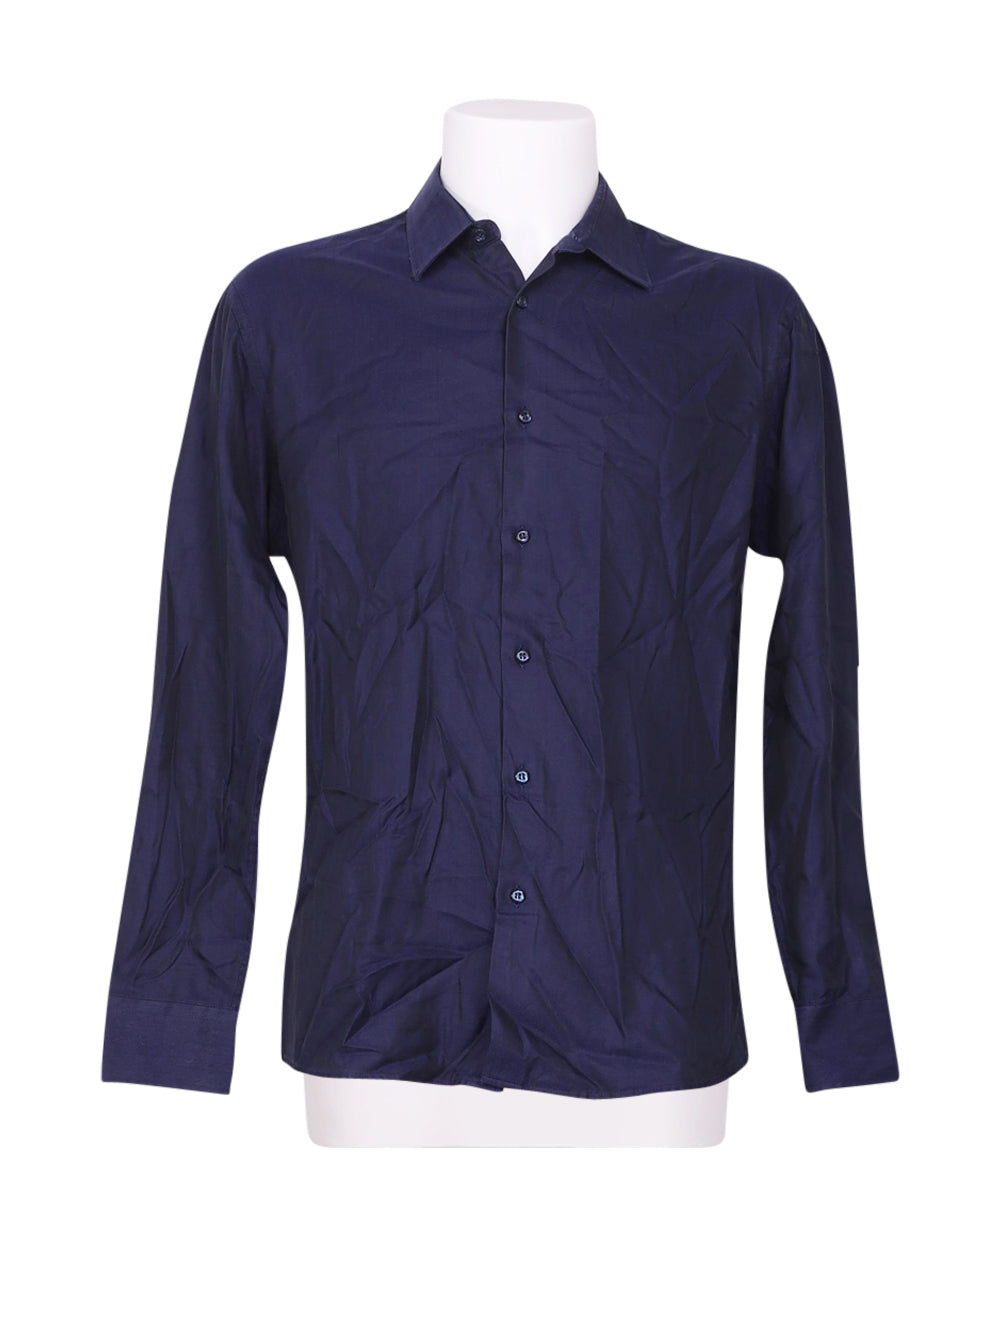 Front photo of Preloved gianmaria Blue Man's shirt - size 40/L